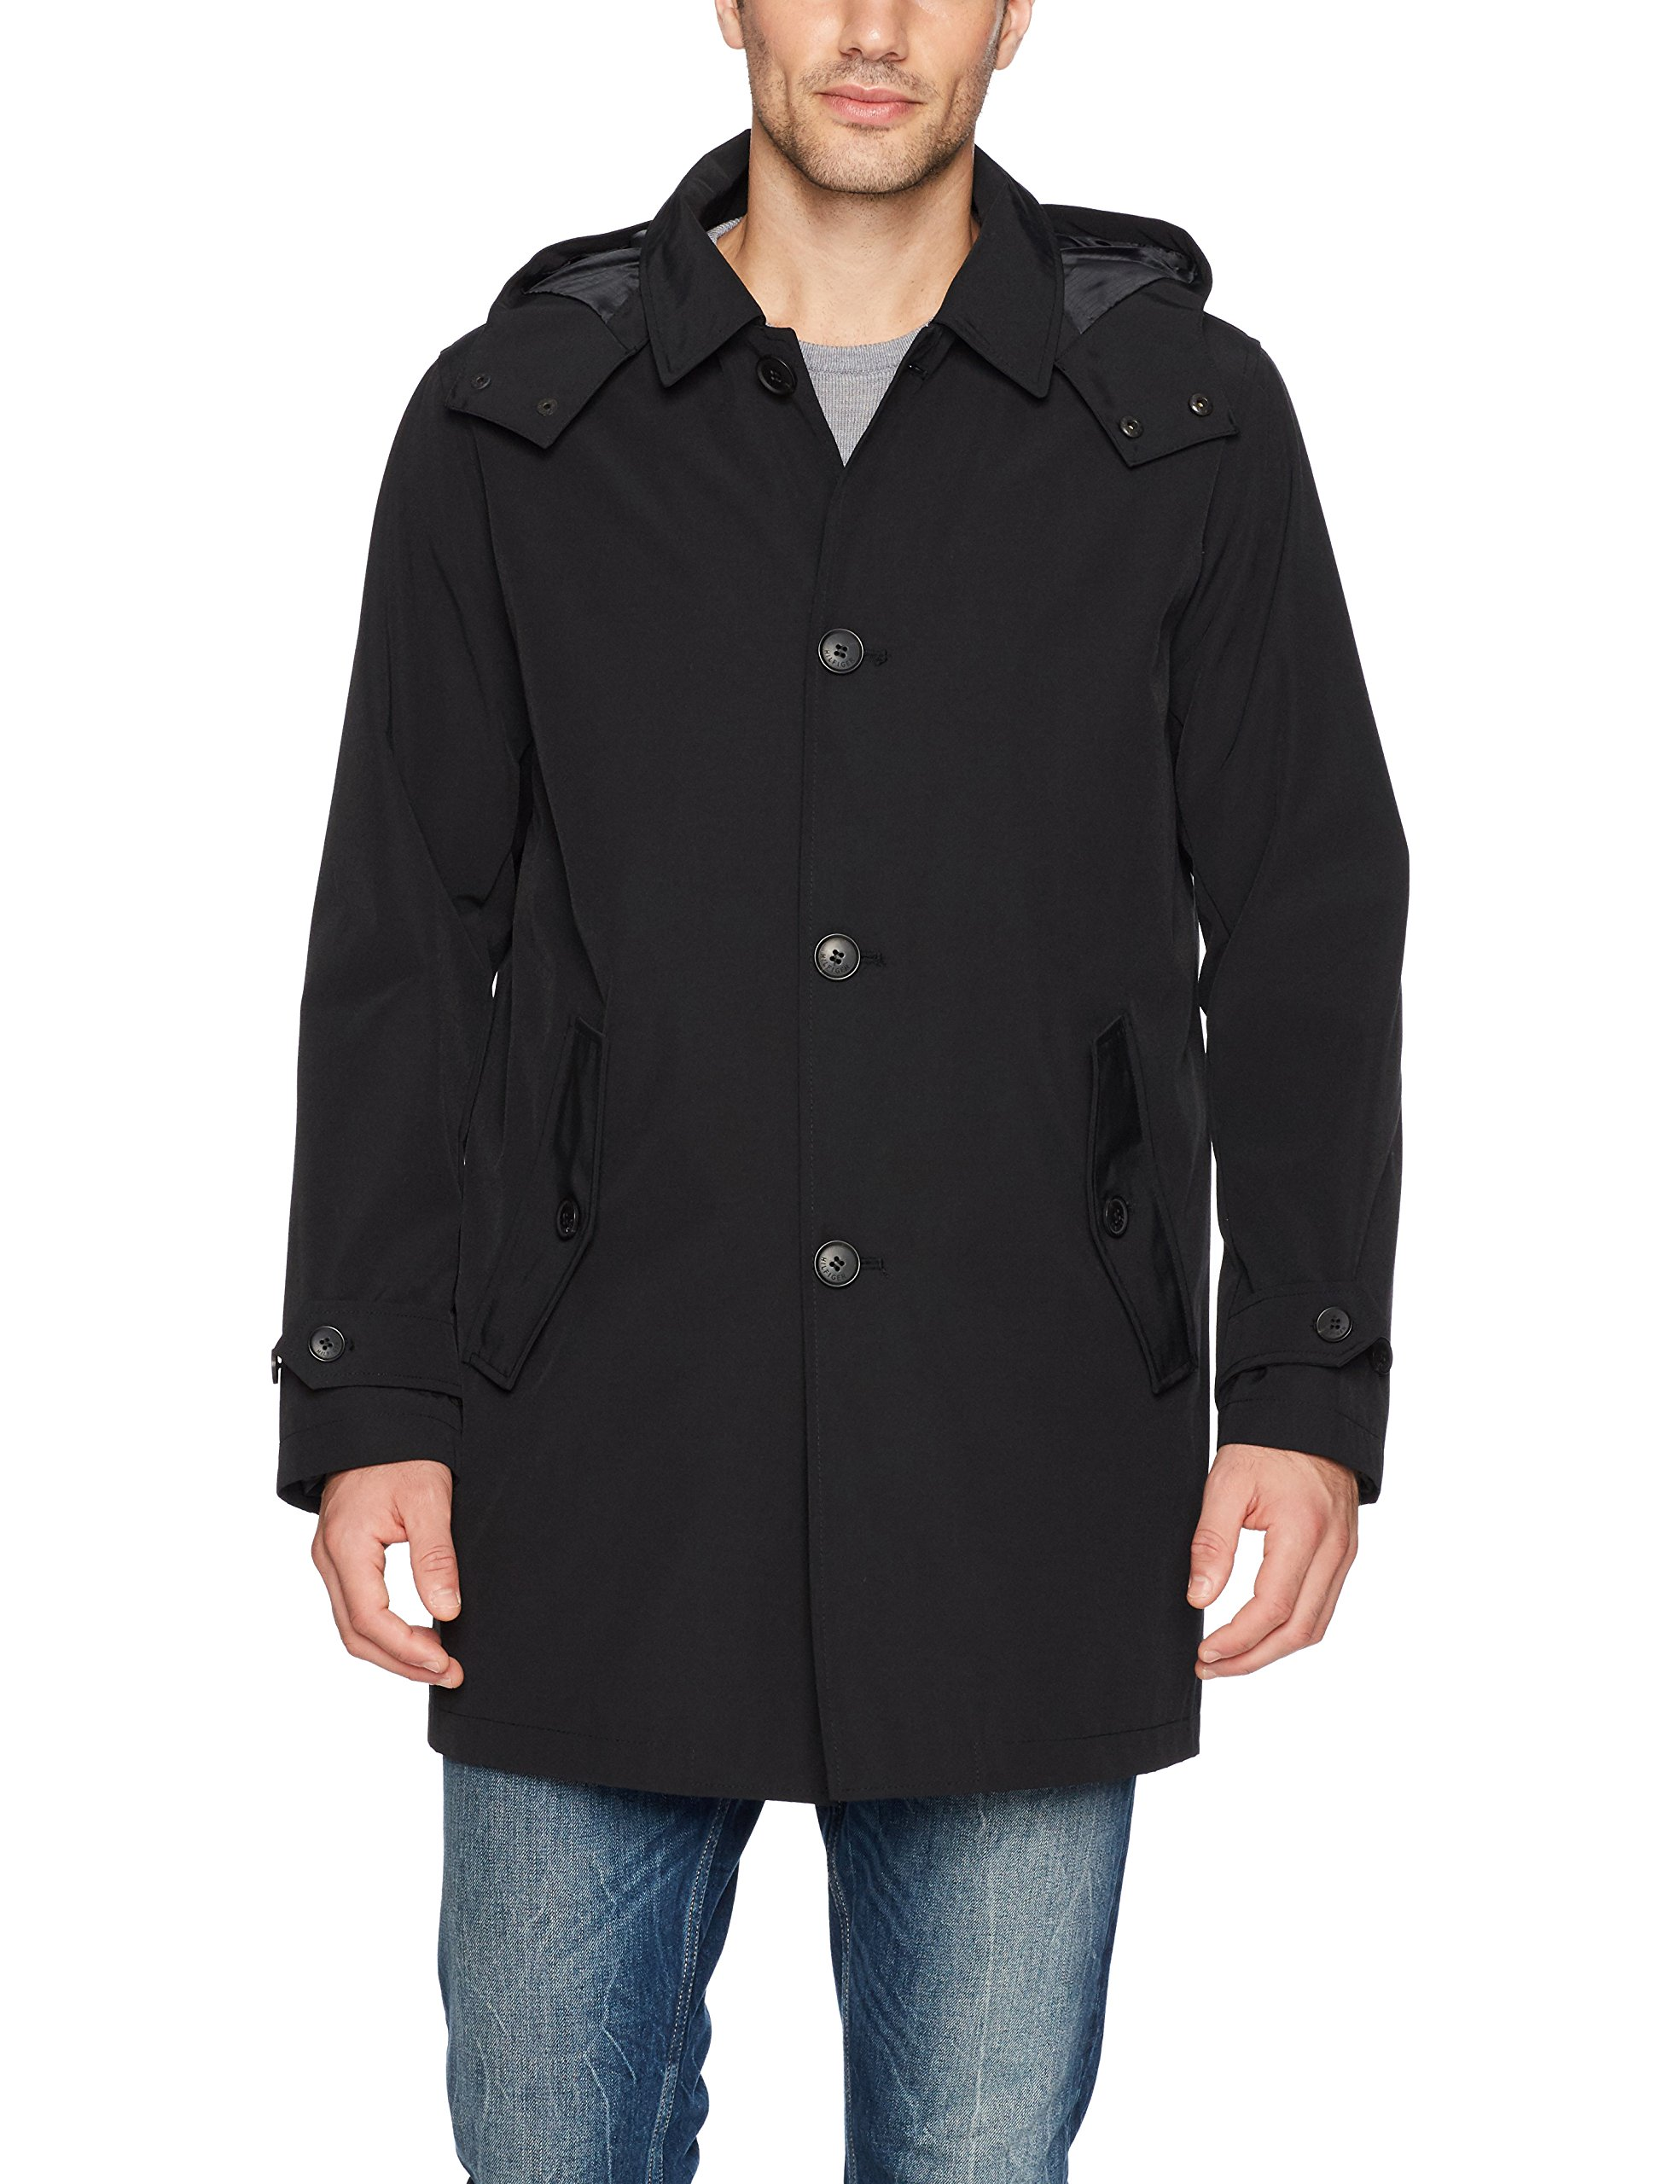 Tommy Hilfiger Men's Hooded Rain Trench Coat with Removable Quilted Liner, Black, Small by Tommy Hilfiger